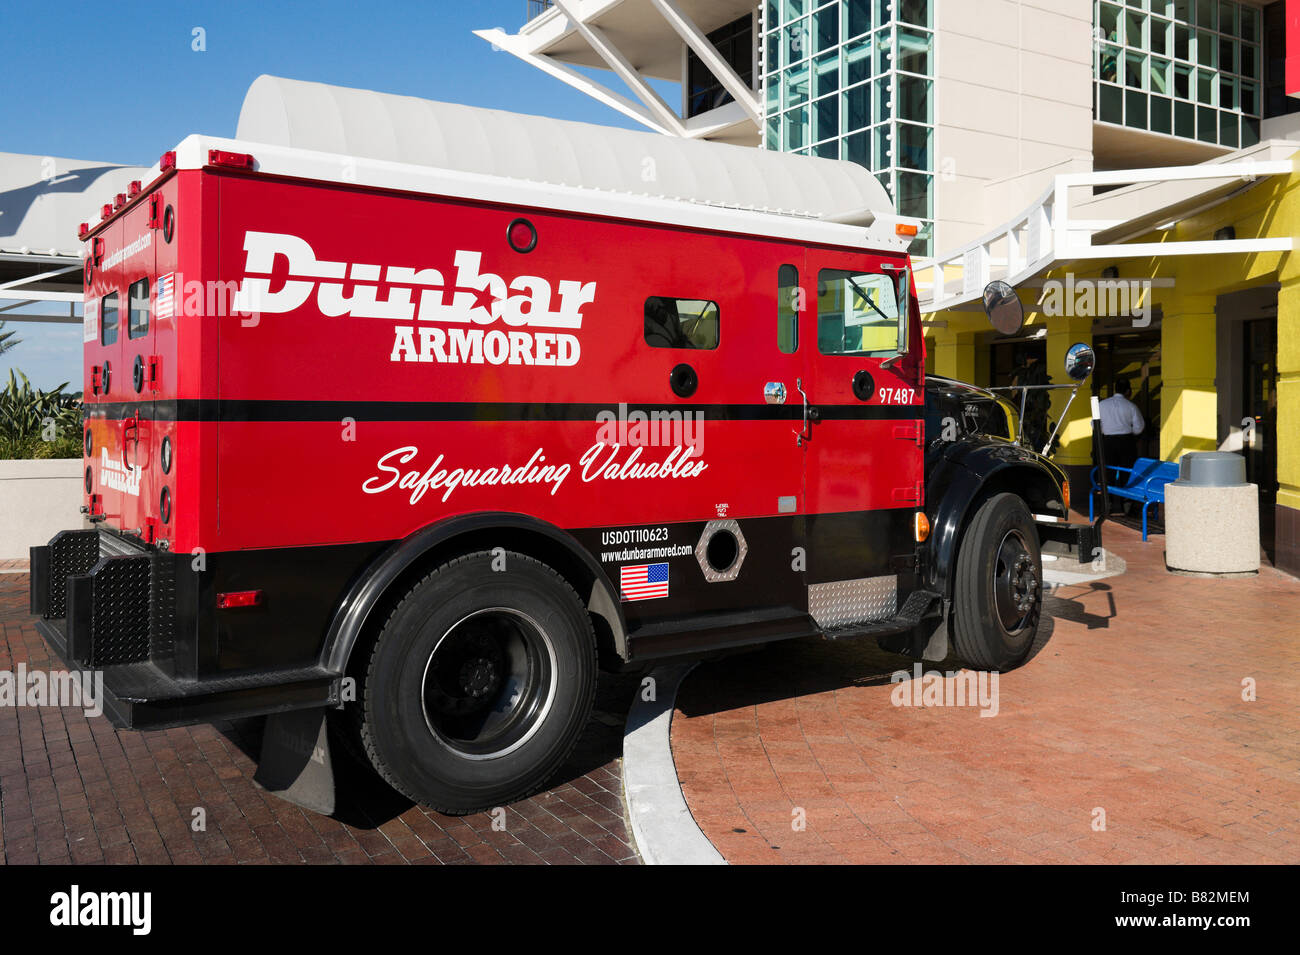 Dunbar Armored Truck outside the entrance to St Petersburg Pier, St Petersburg, Gulf Coast, Florida, USA - Stock Image